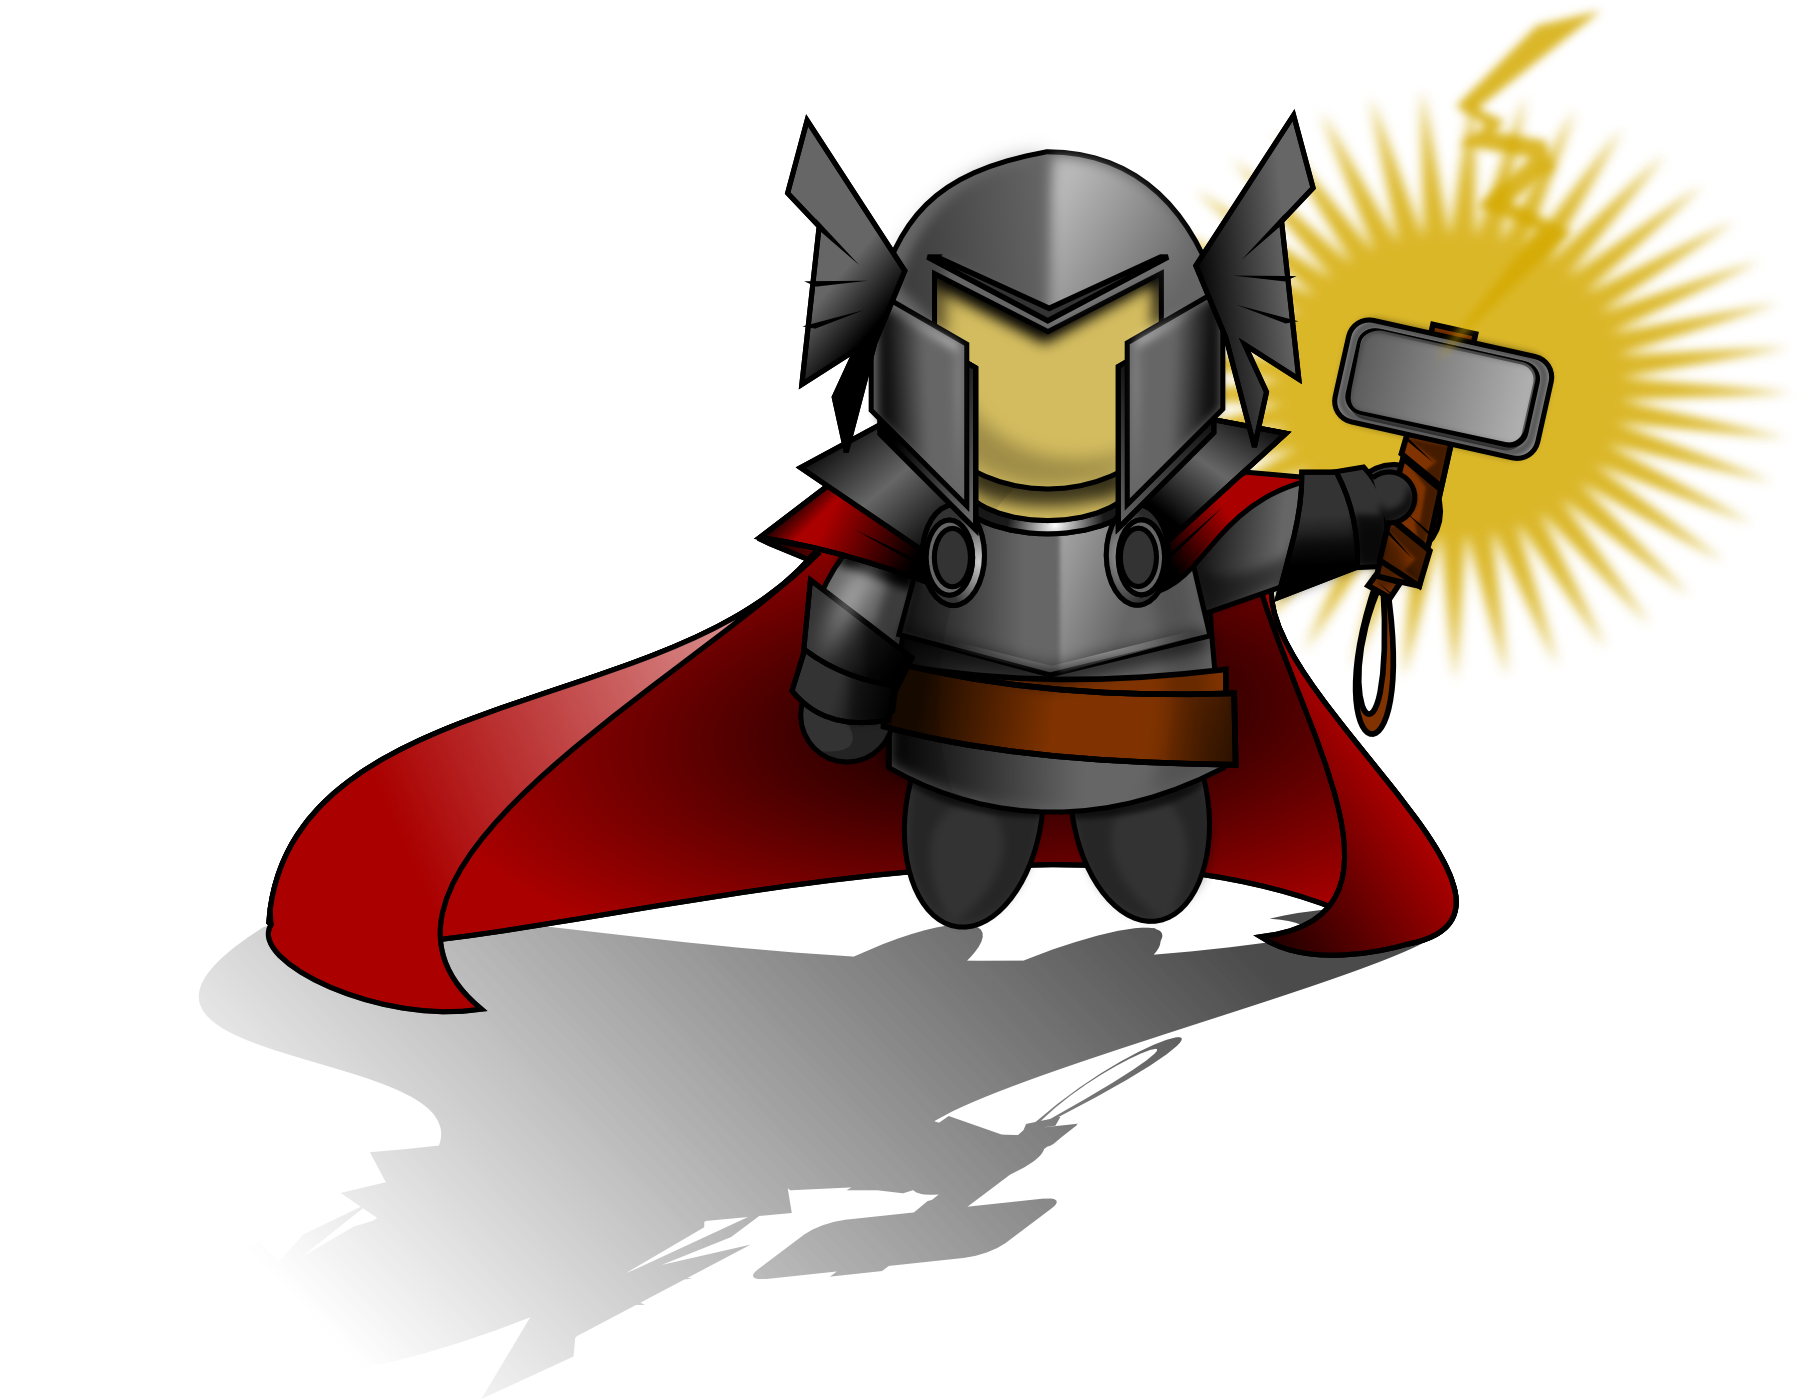 Download Thor Png: Thor Clipart, Download Thor Clipart